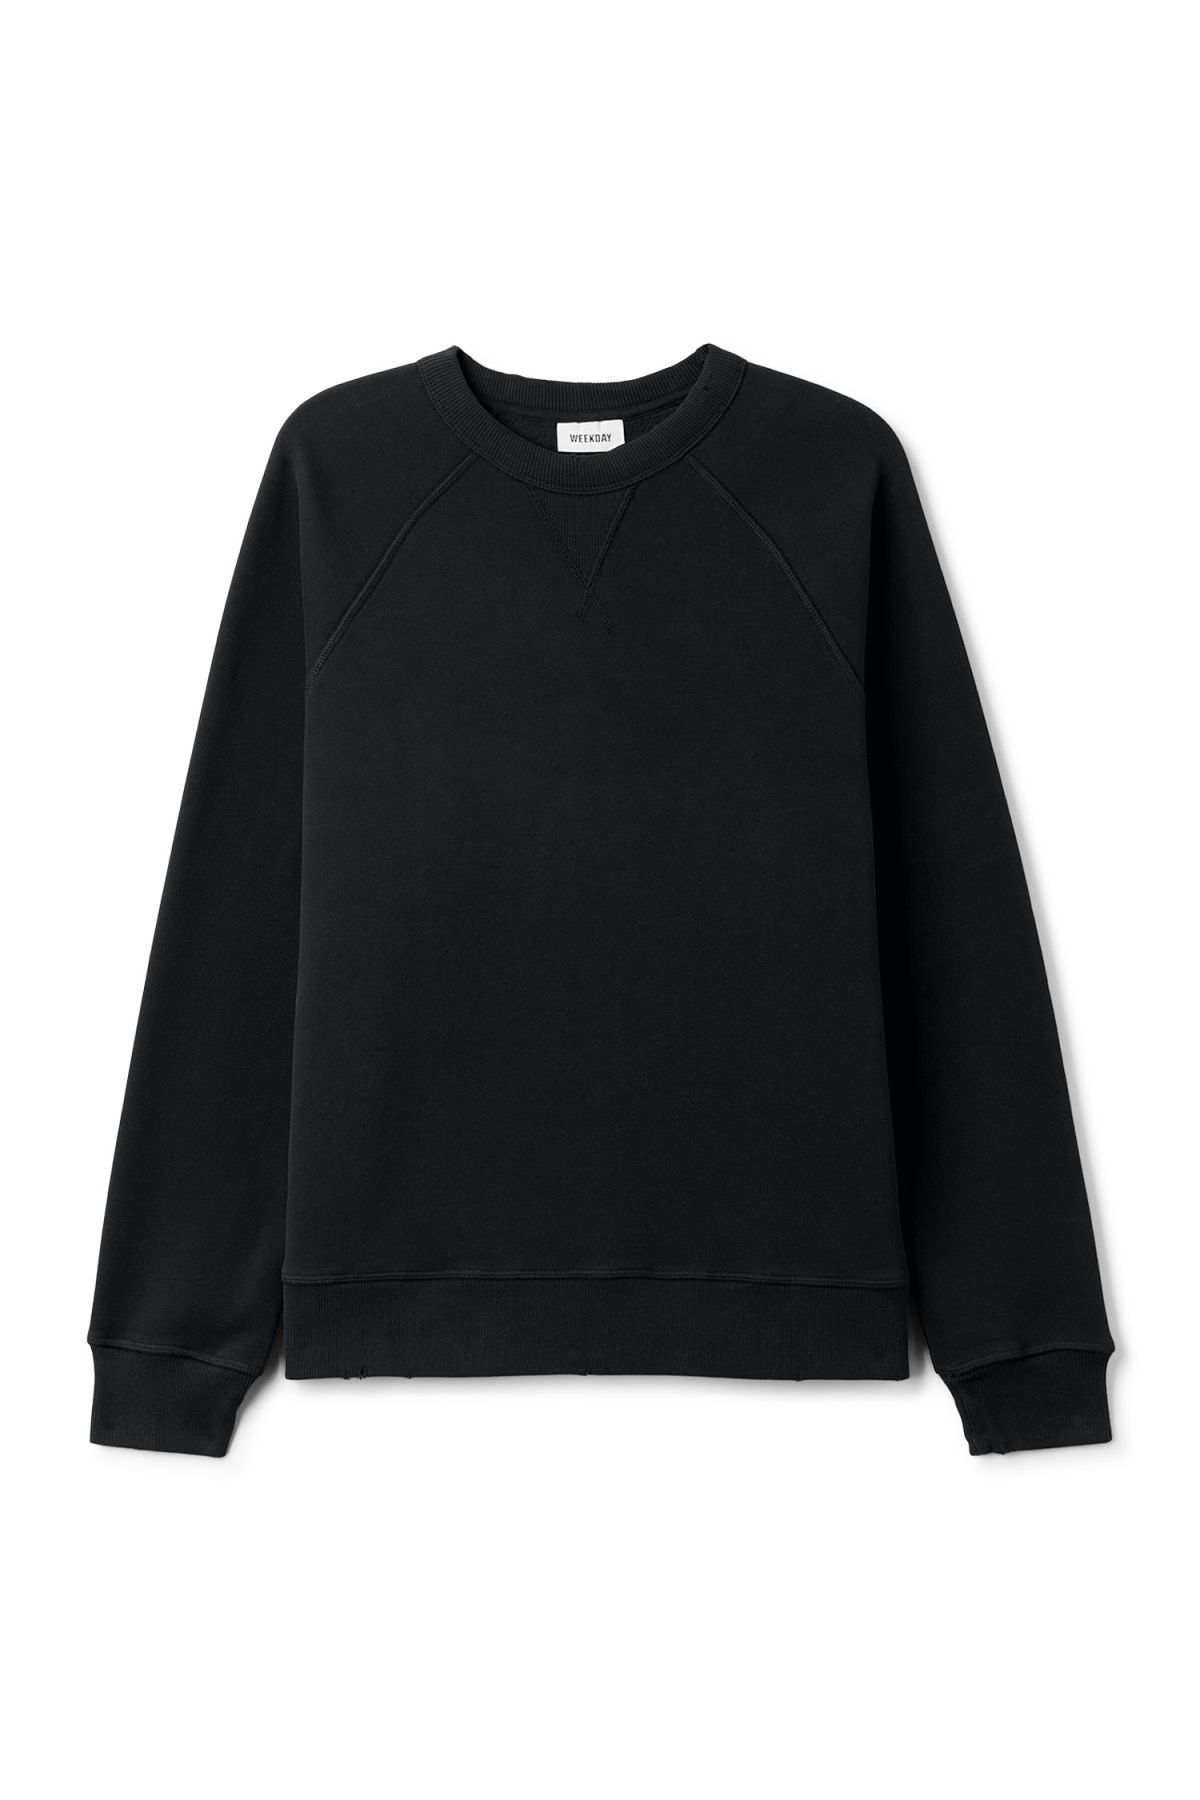 Front image of Weekday jaxon worn sweatshirt in black